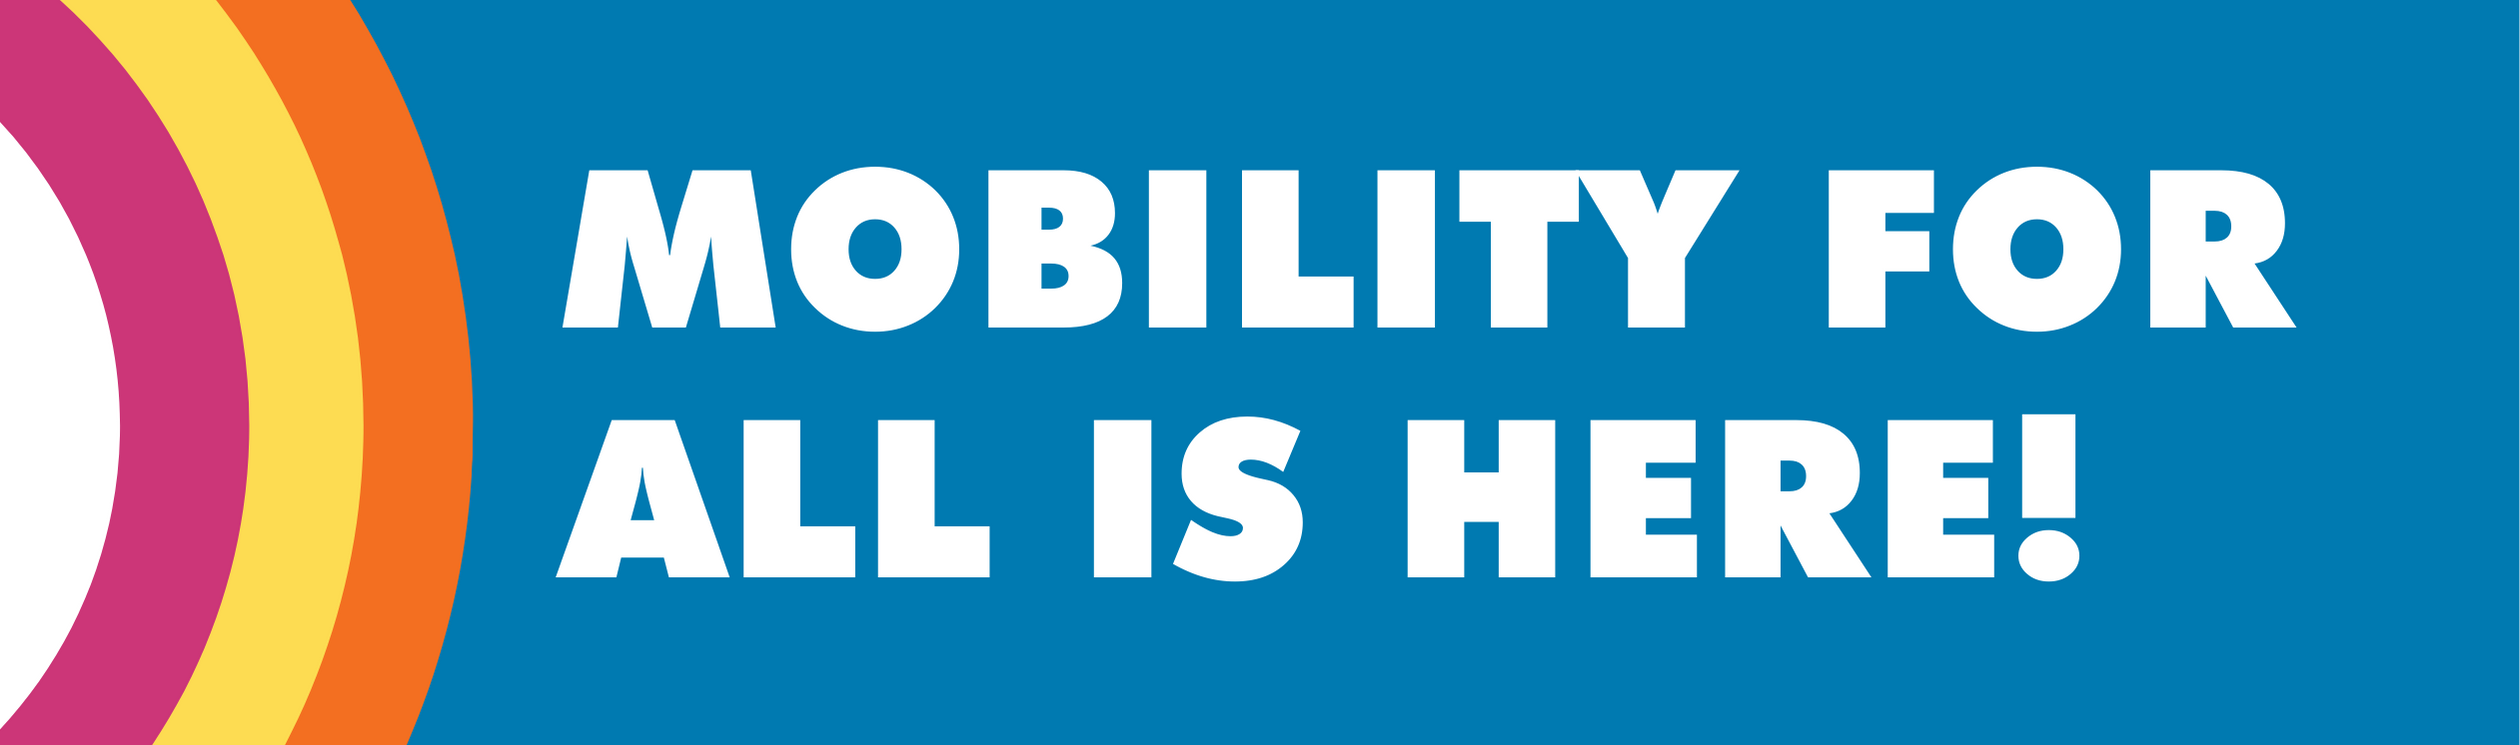 Mobility for All is Here Graphic - Leader